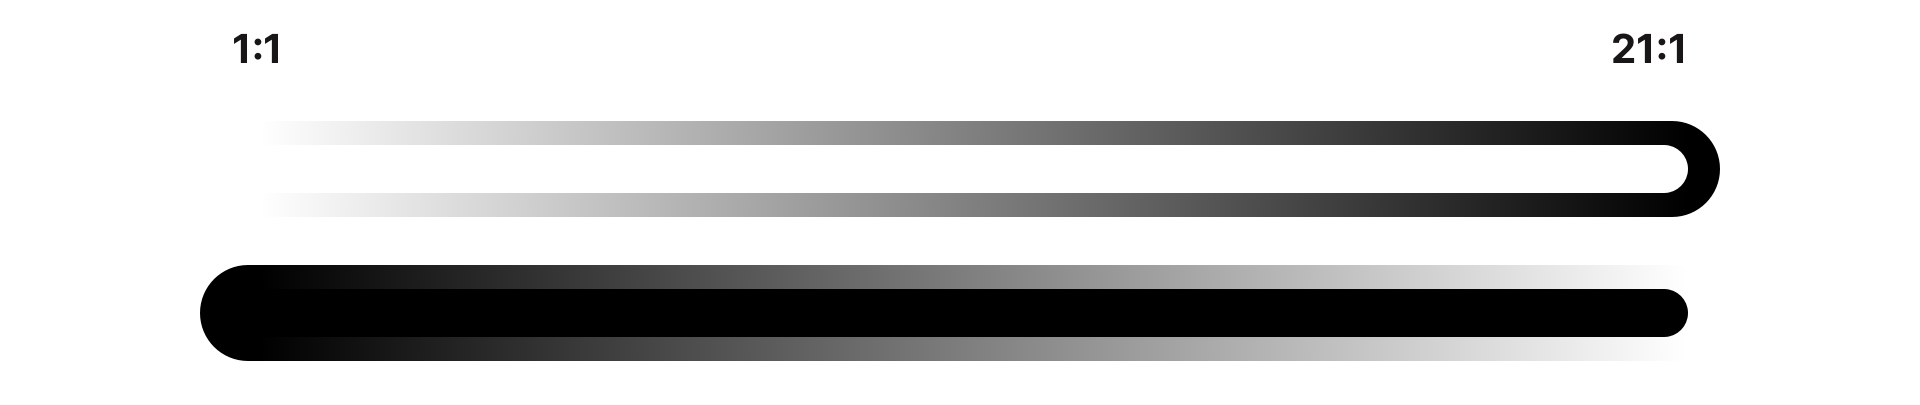 Picture showing contrast ratios of black on white and white on black